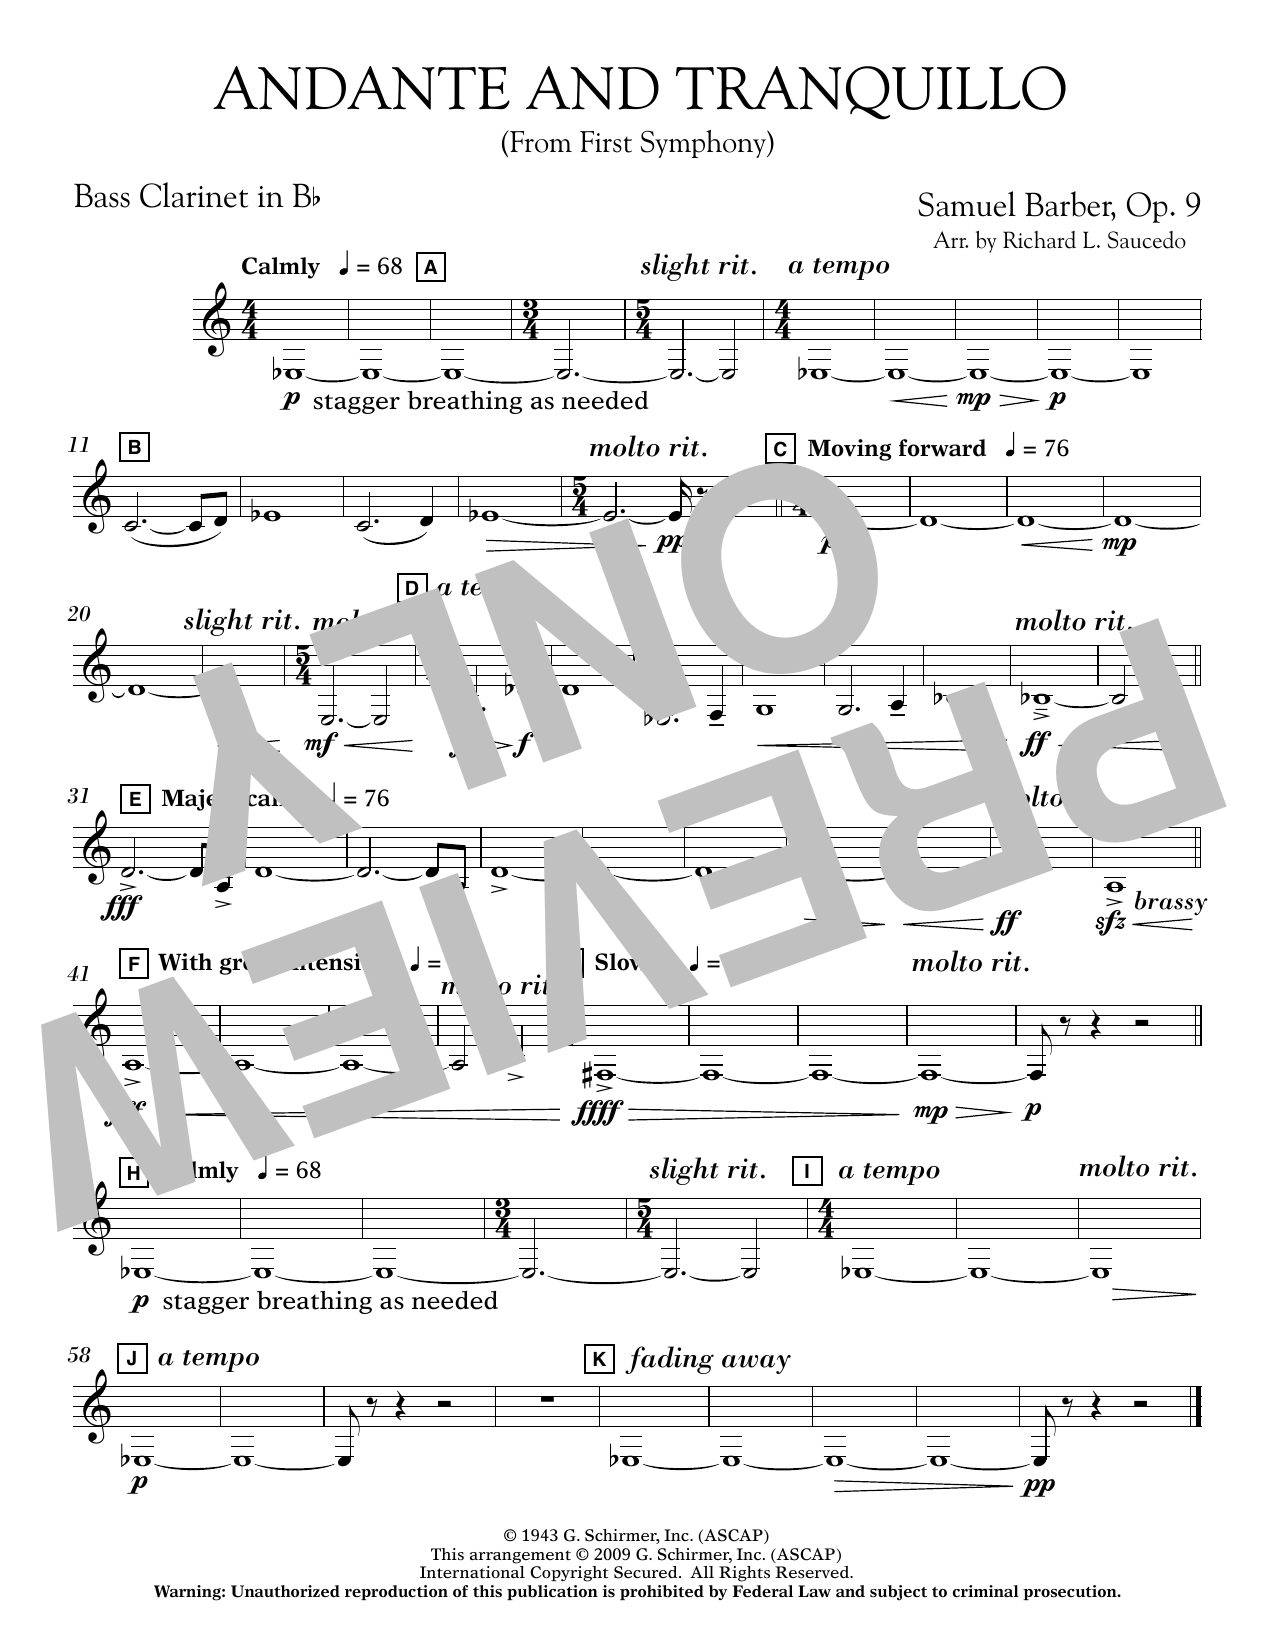 Andante and Tranquillo (from First Symphony) - Bb Bass Clarinet Sheet Music